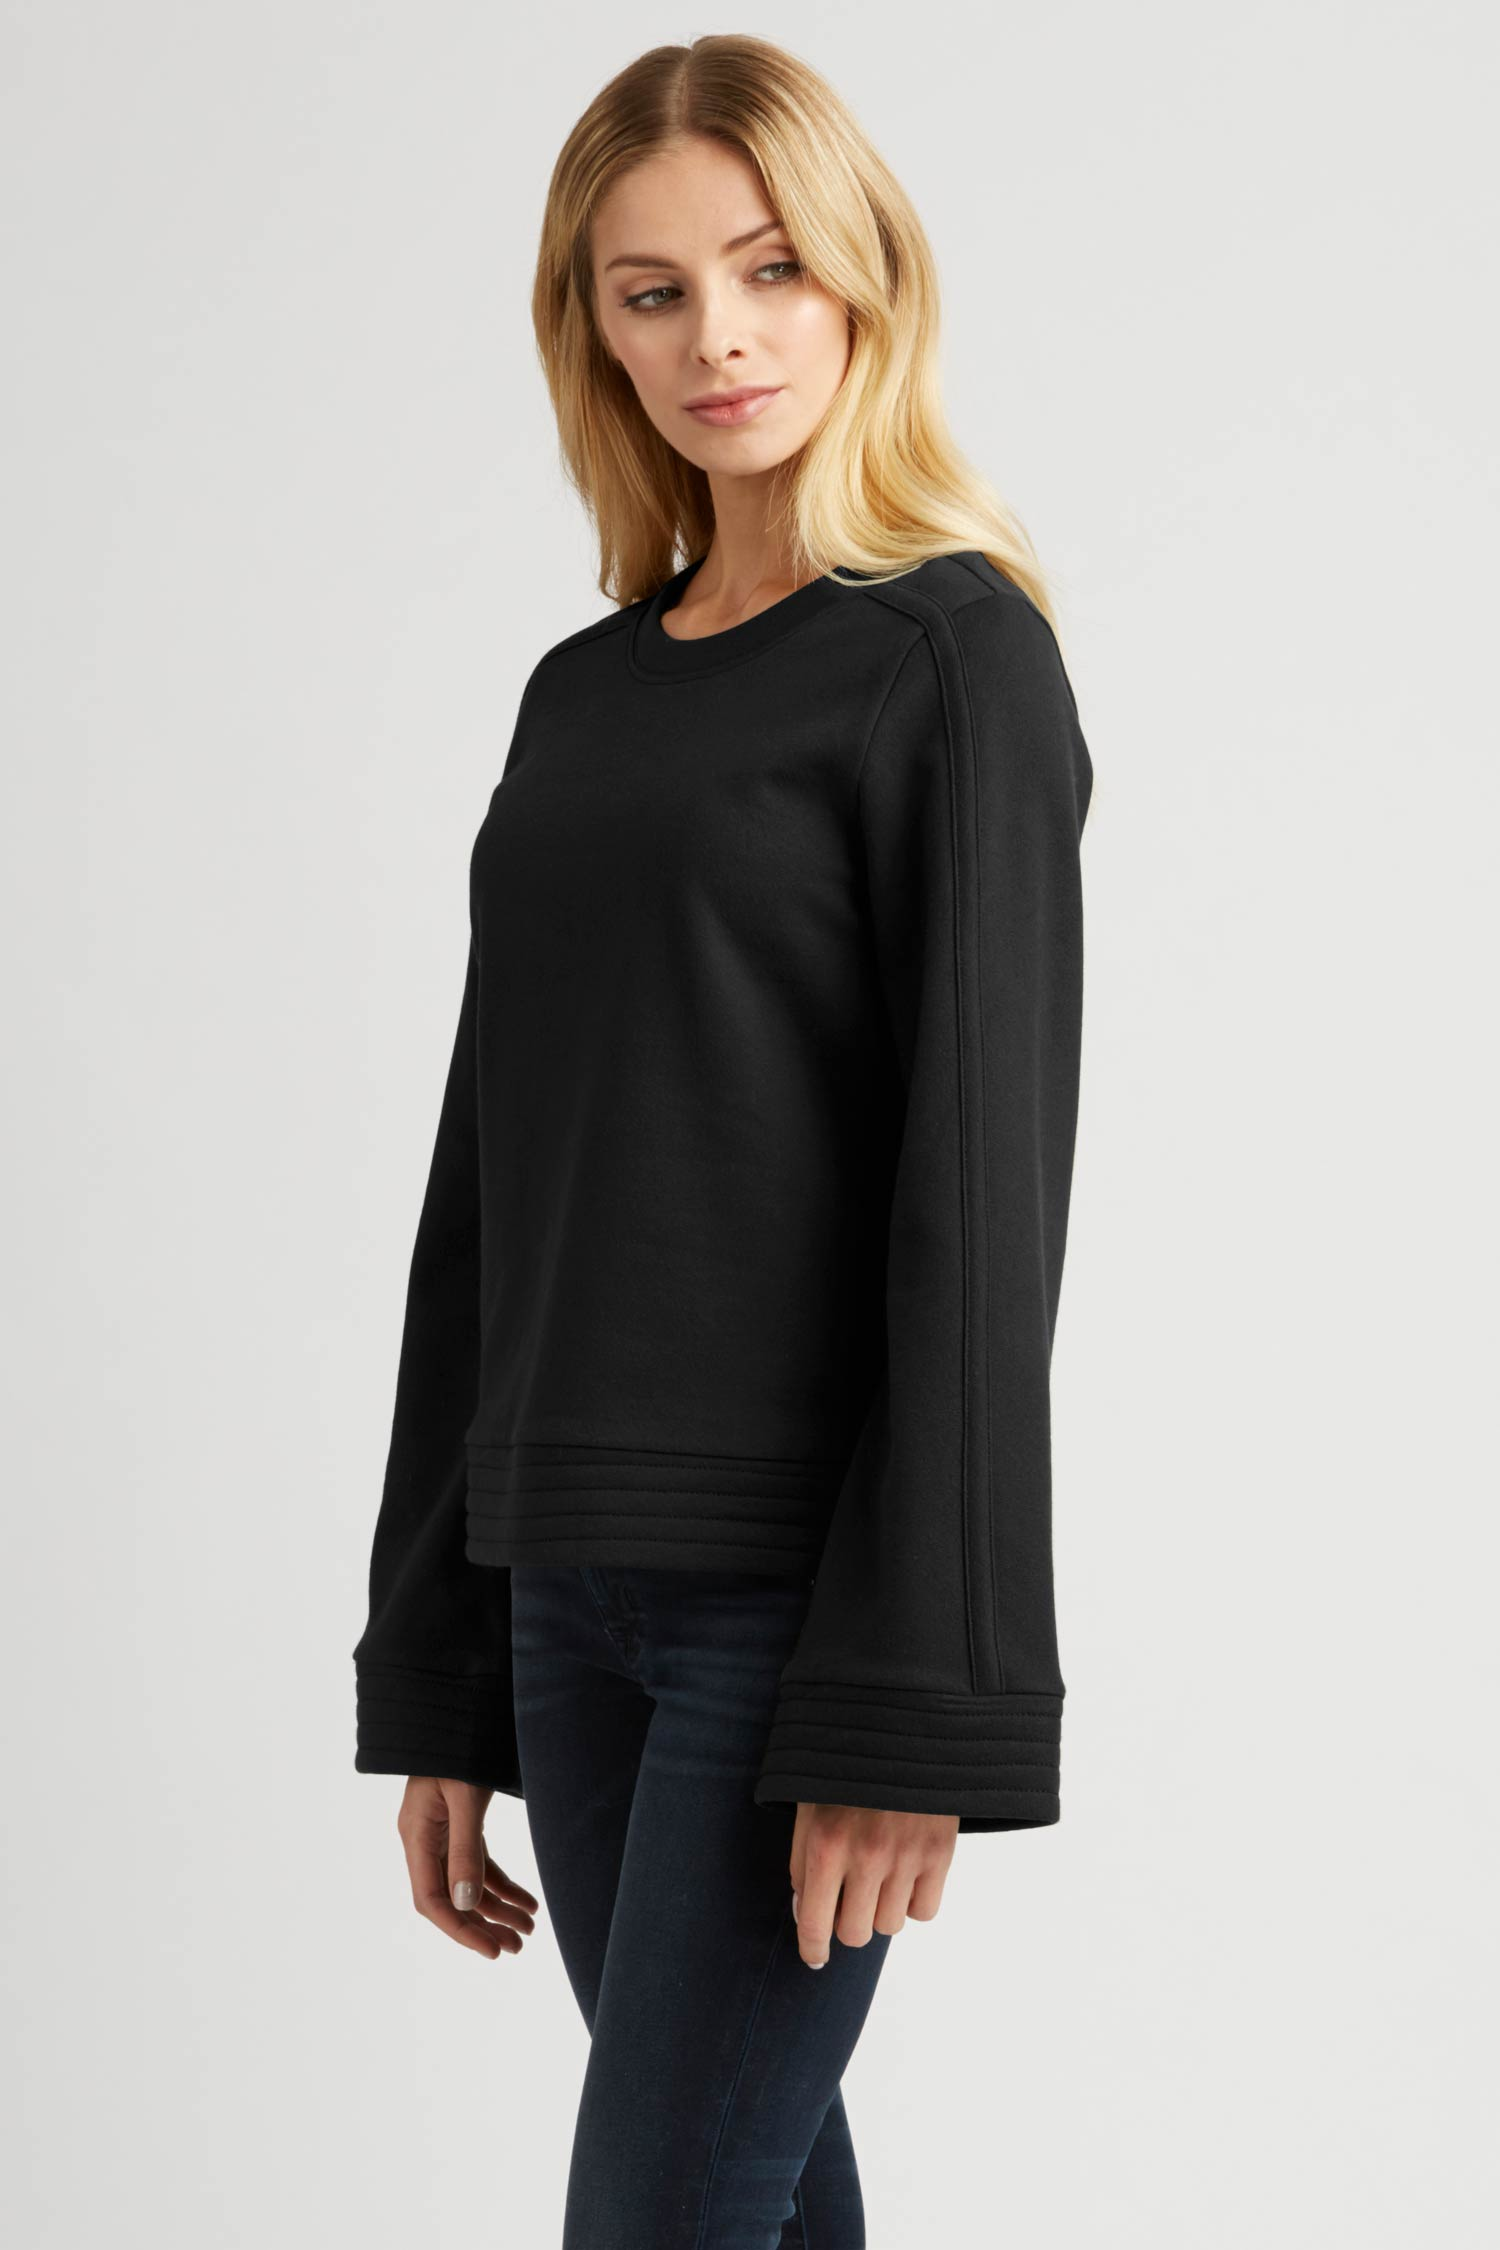 Womens Bell Sleeve Pullover Top in Black Organic Cotton